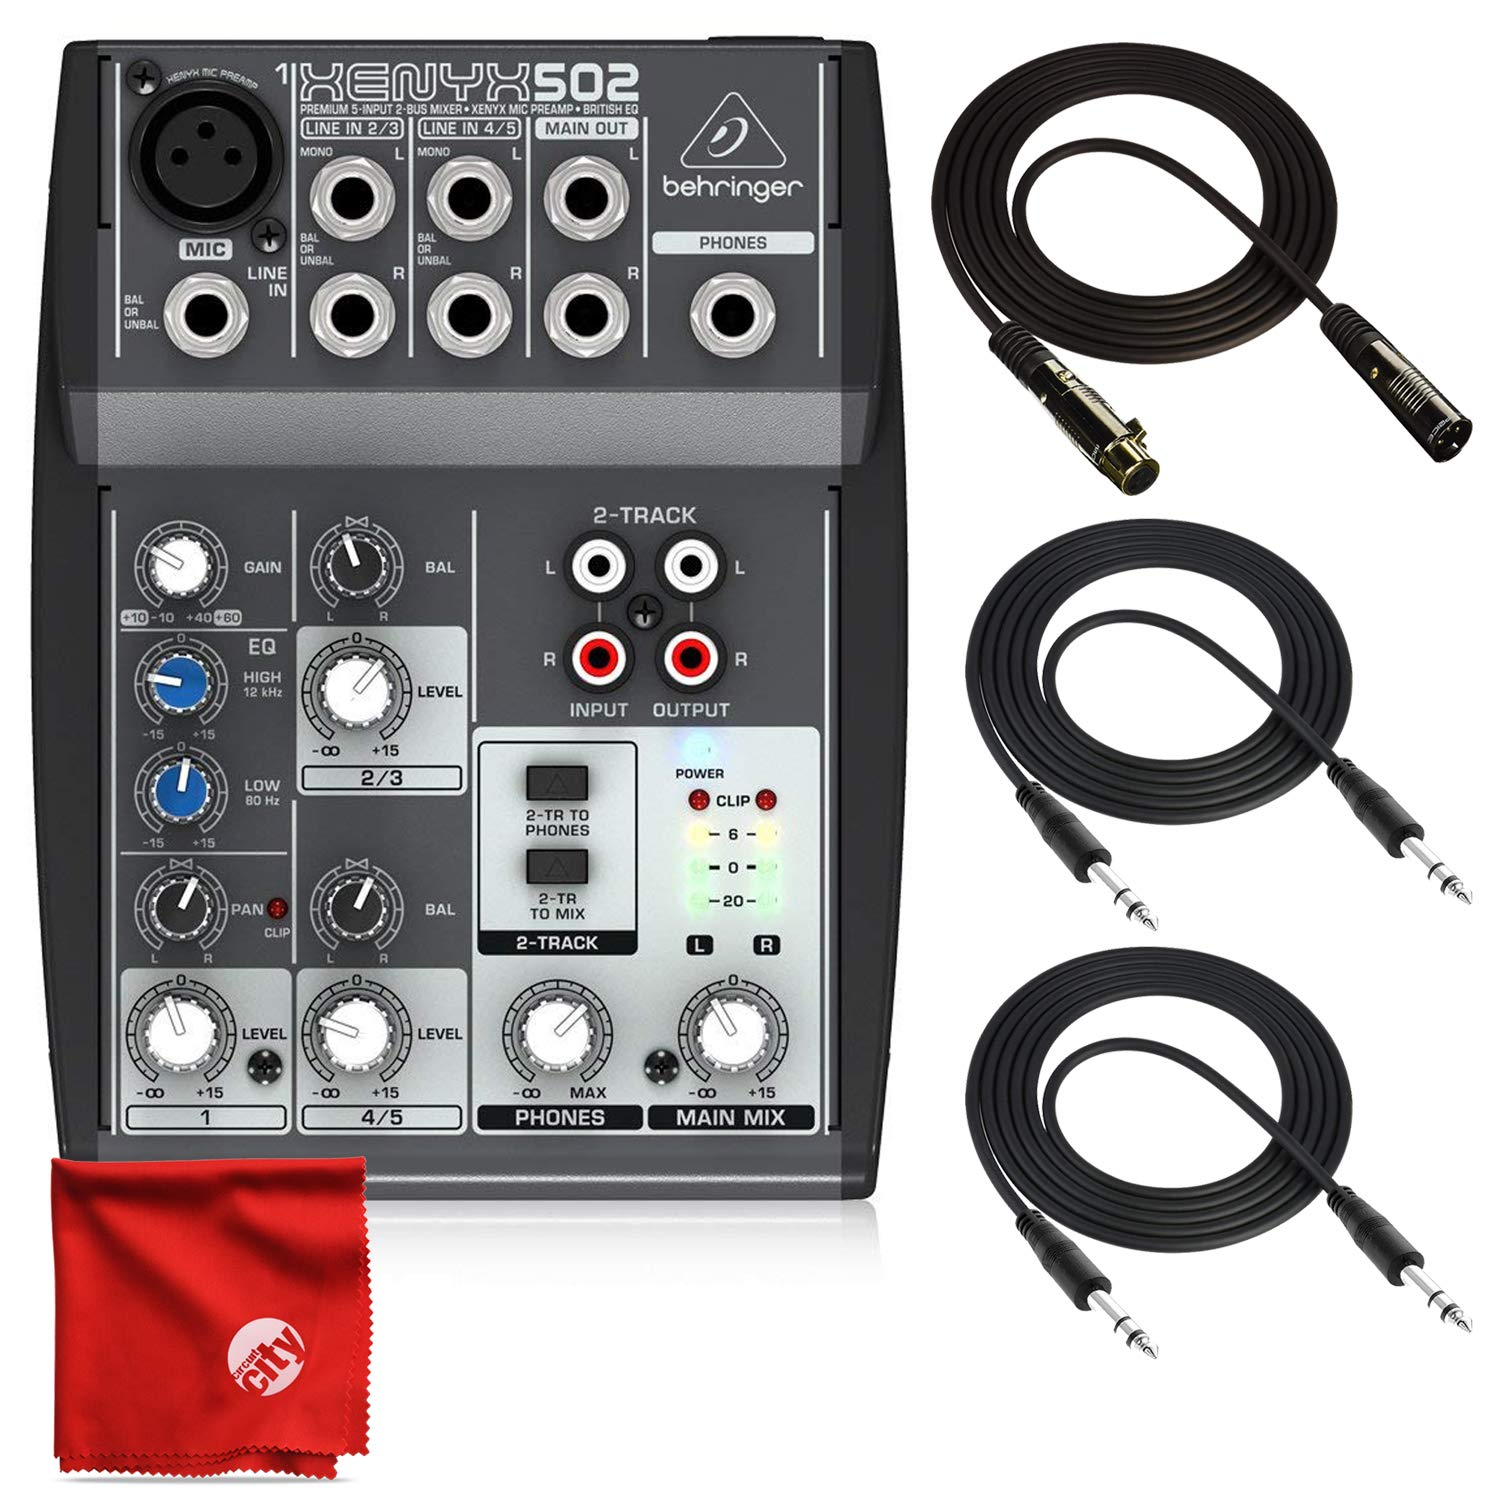 Behringer Xenyx 502 Premium 5-Input 2-Bus Mixer with XENYX Mic Preamp and British EQ Bundle 2X 10ft TRS Cables Deluxe 10ft XLR Cable Cleaning Cloth